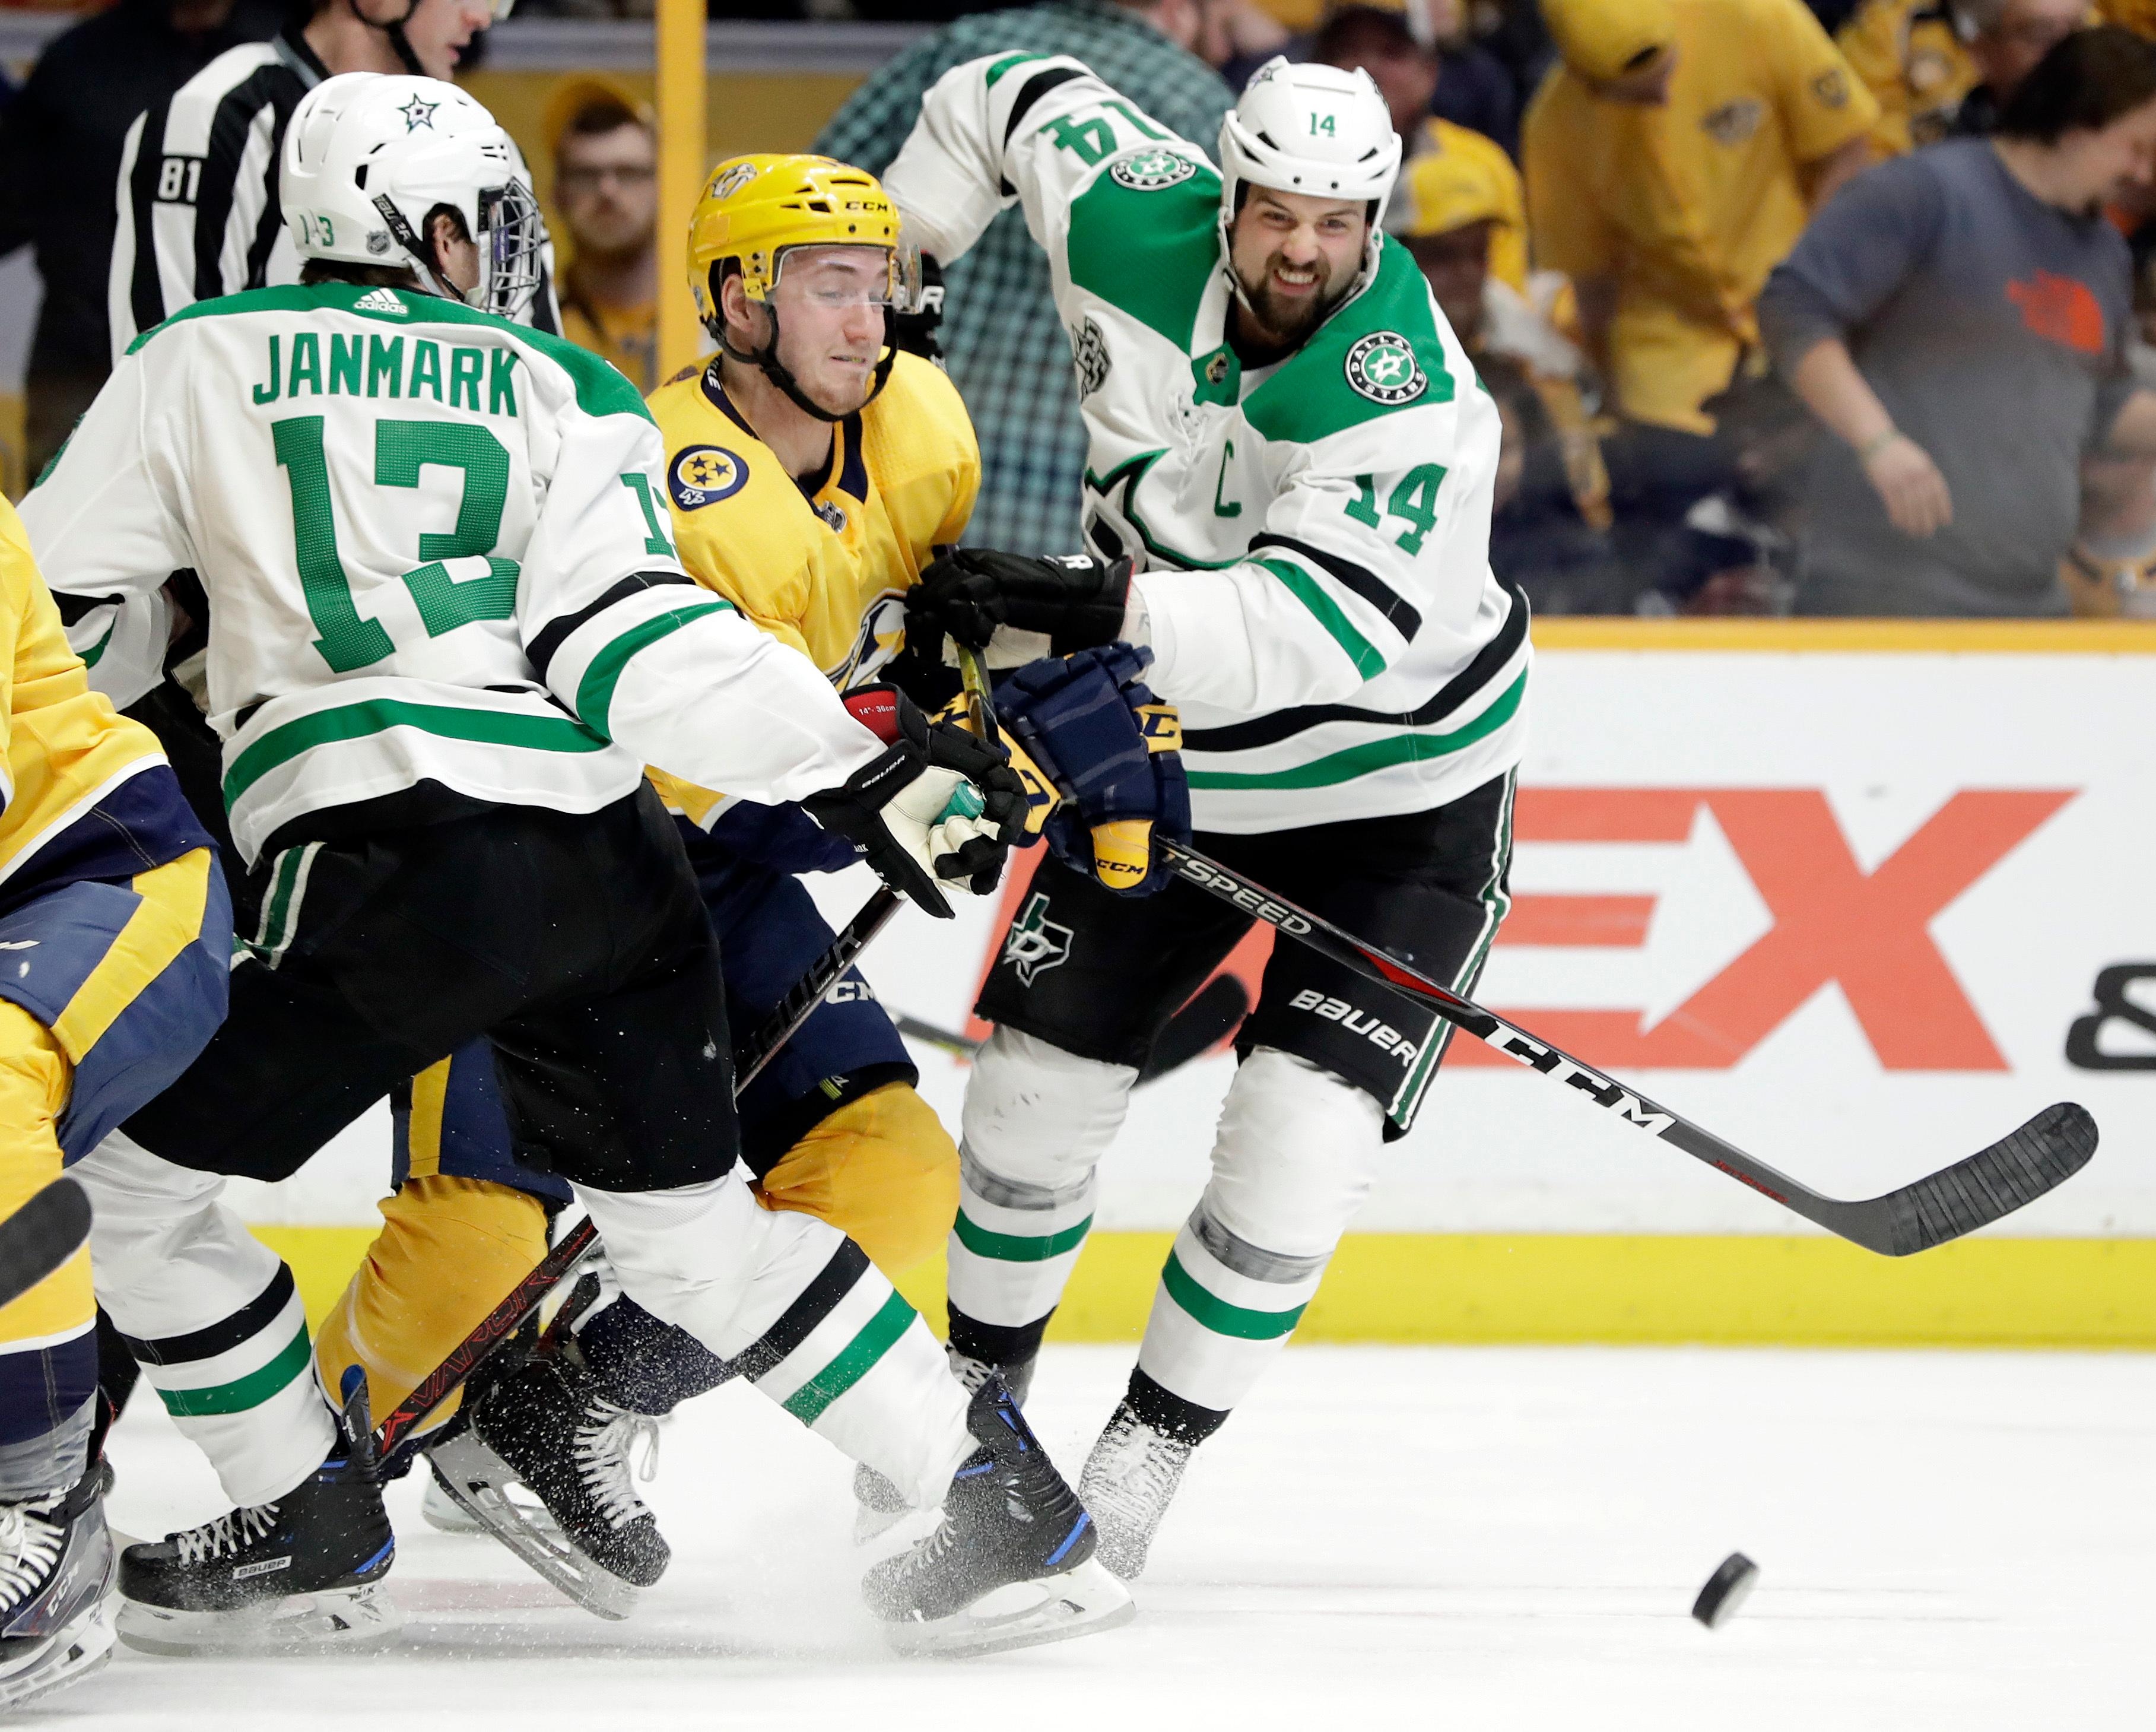 Nashville Predators' Colton Sissons, center, tries to move past Dallas Stars' Mattias Janmark (13), of Sweden, of the Czech Republic, and Jamie Benn (14) in the first period of an NHL hockey game Tuesday, March 6, 2018, in Nashville, Tenn. (AP Photo/Mark Humphrey)